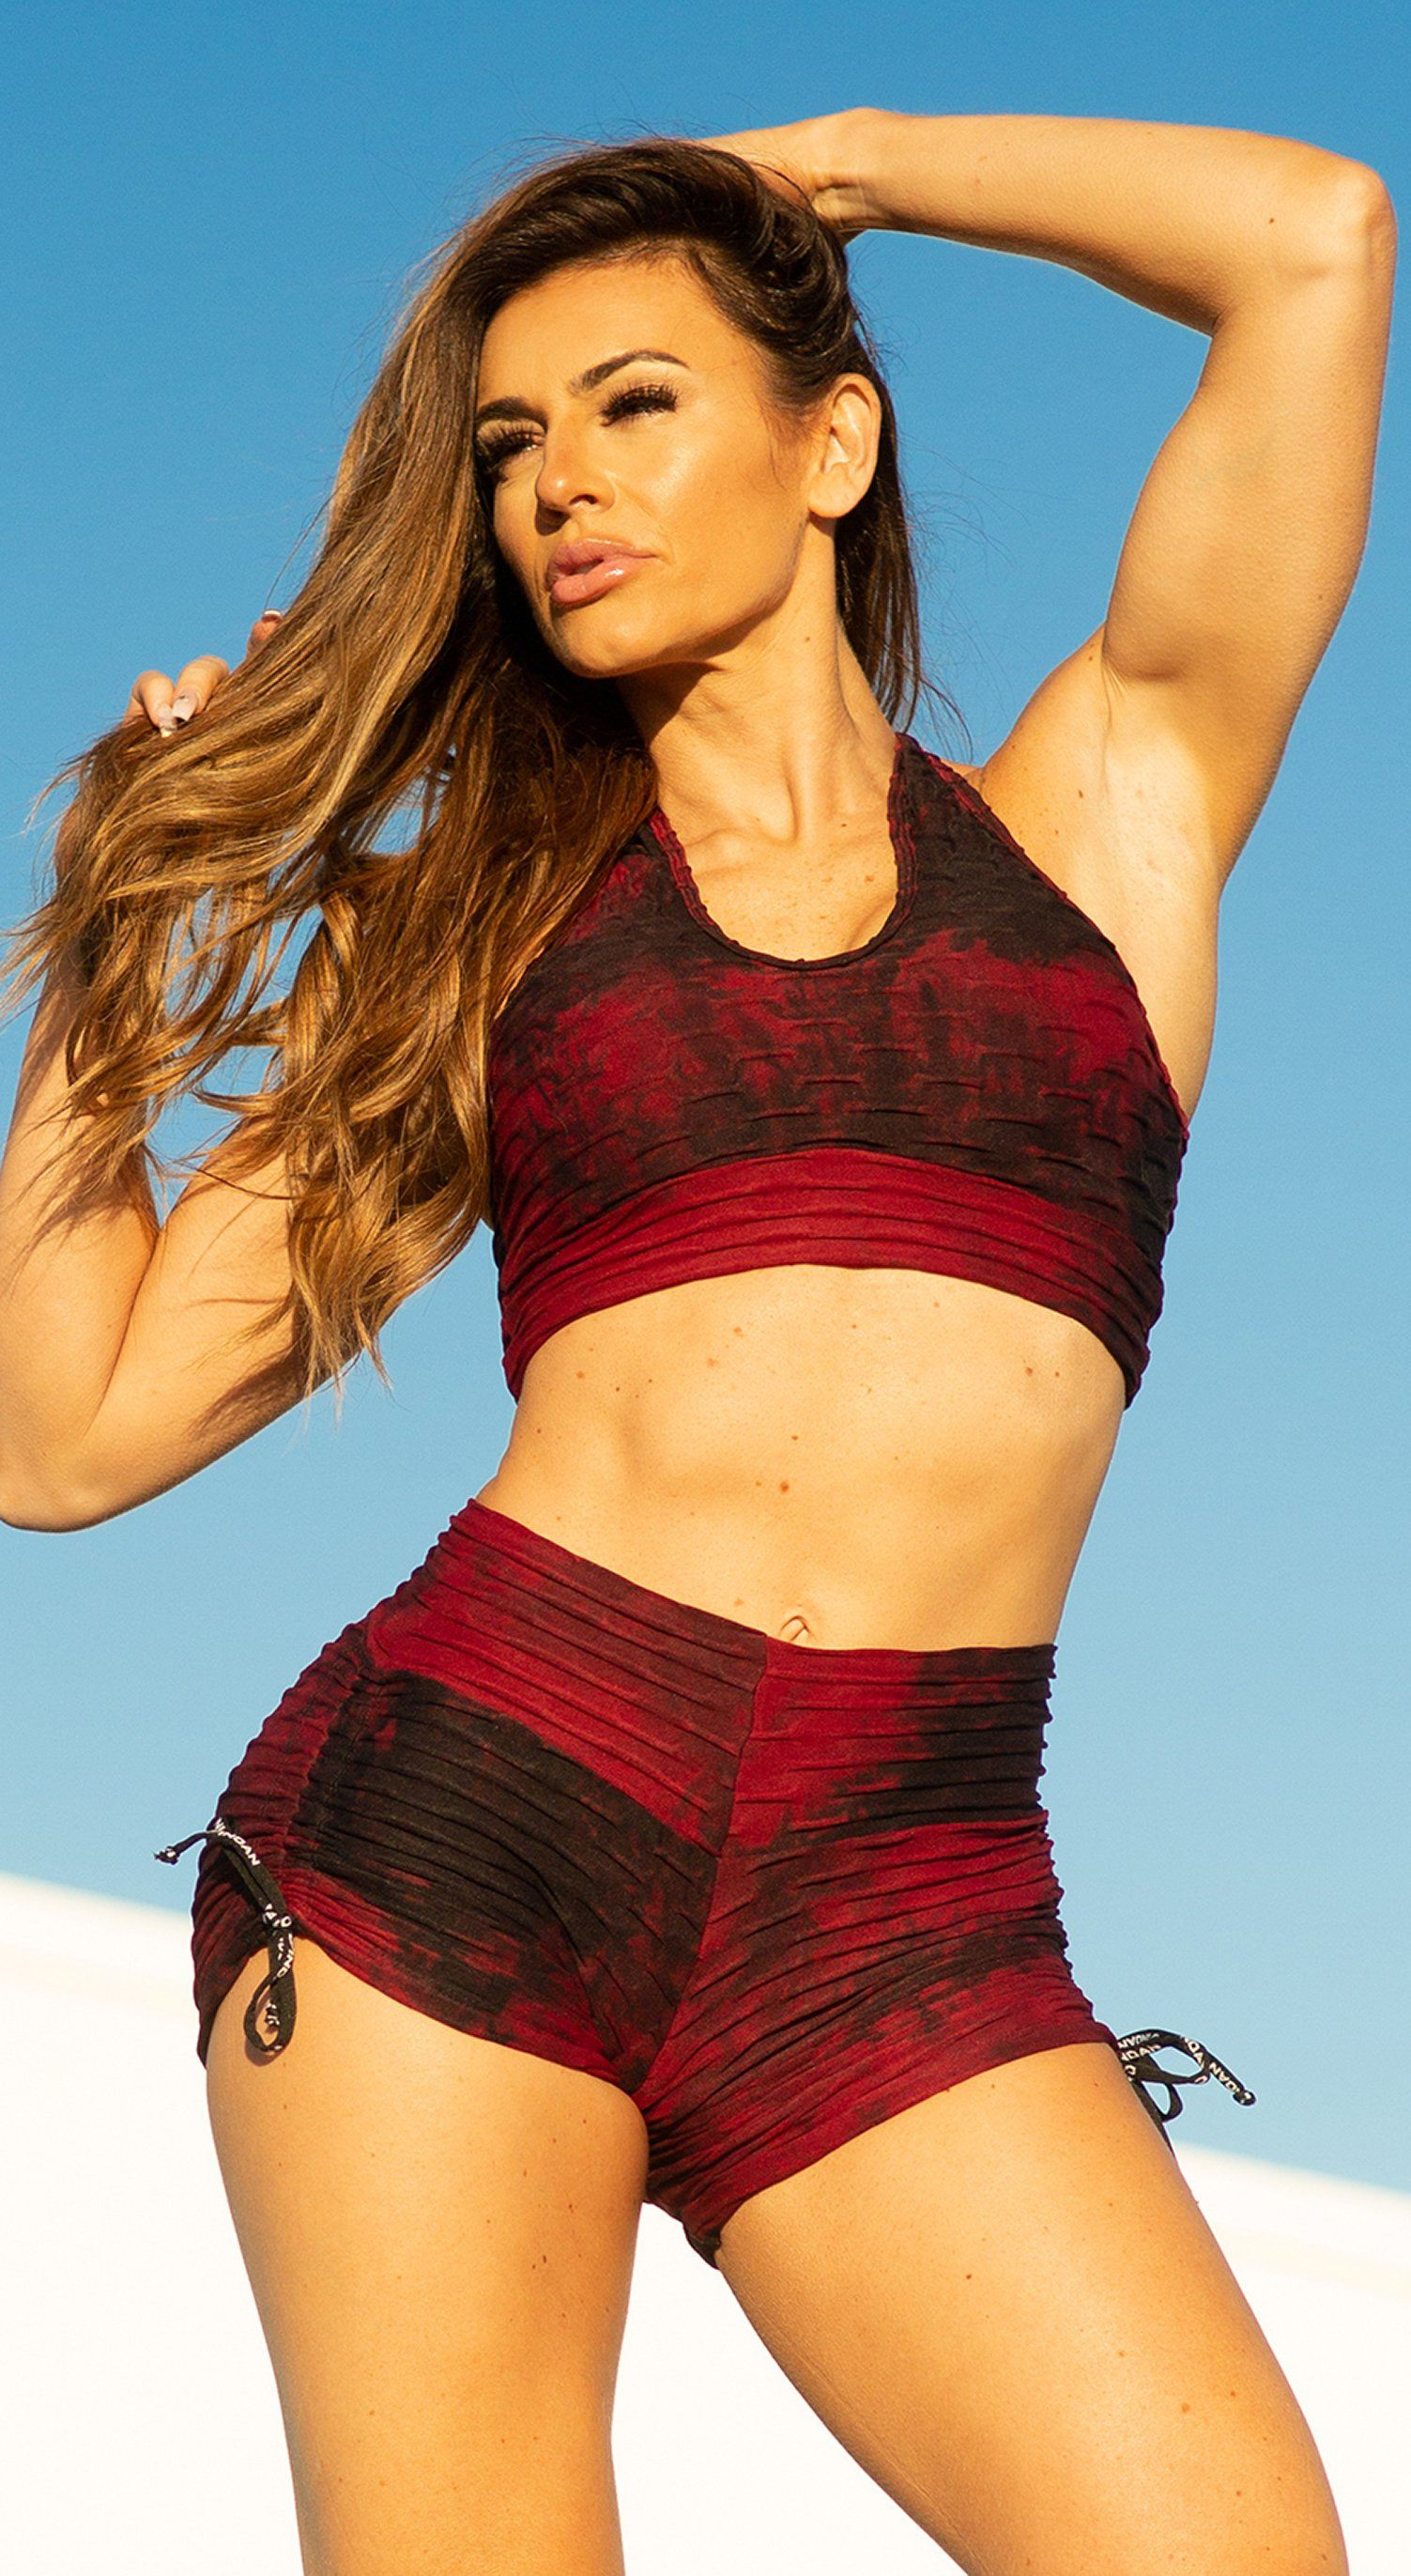 Brazilian Sports Bra - Textured Tie Dye Bordo & Black